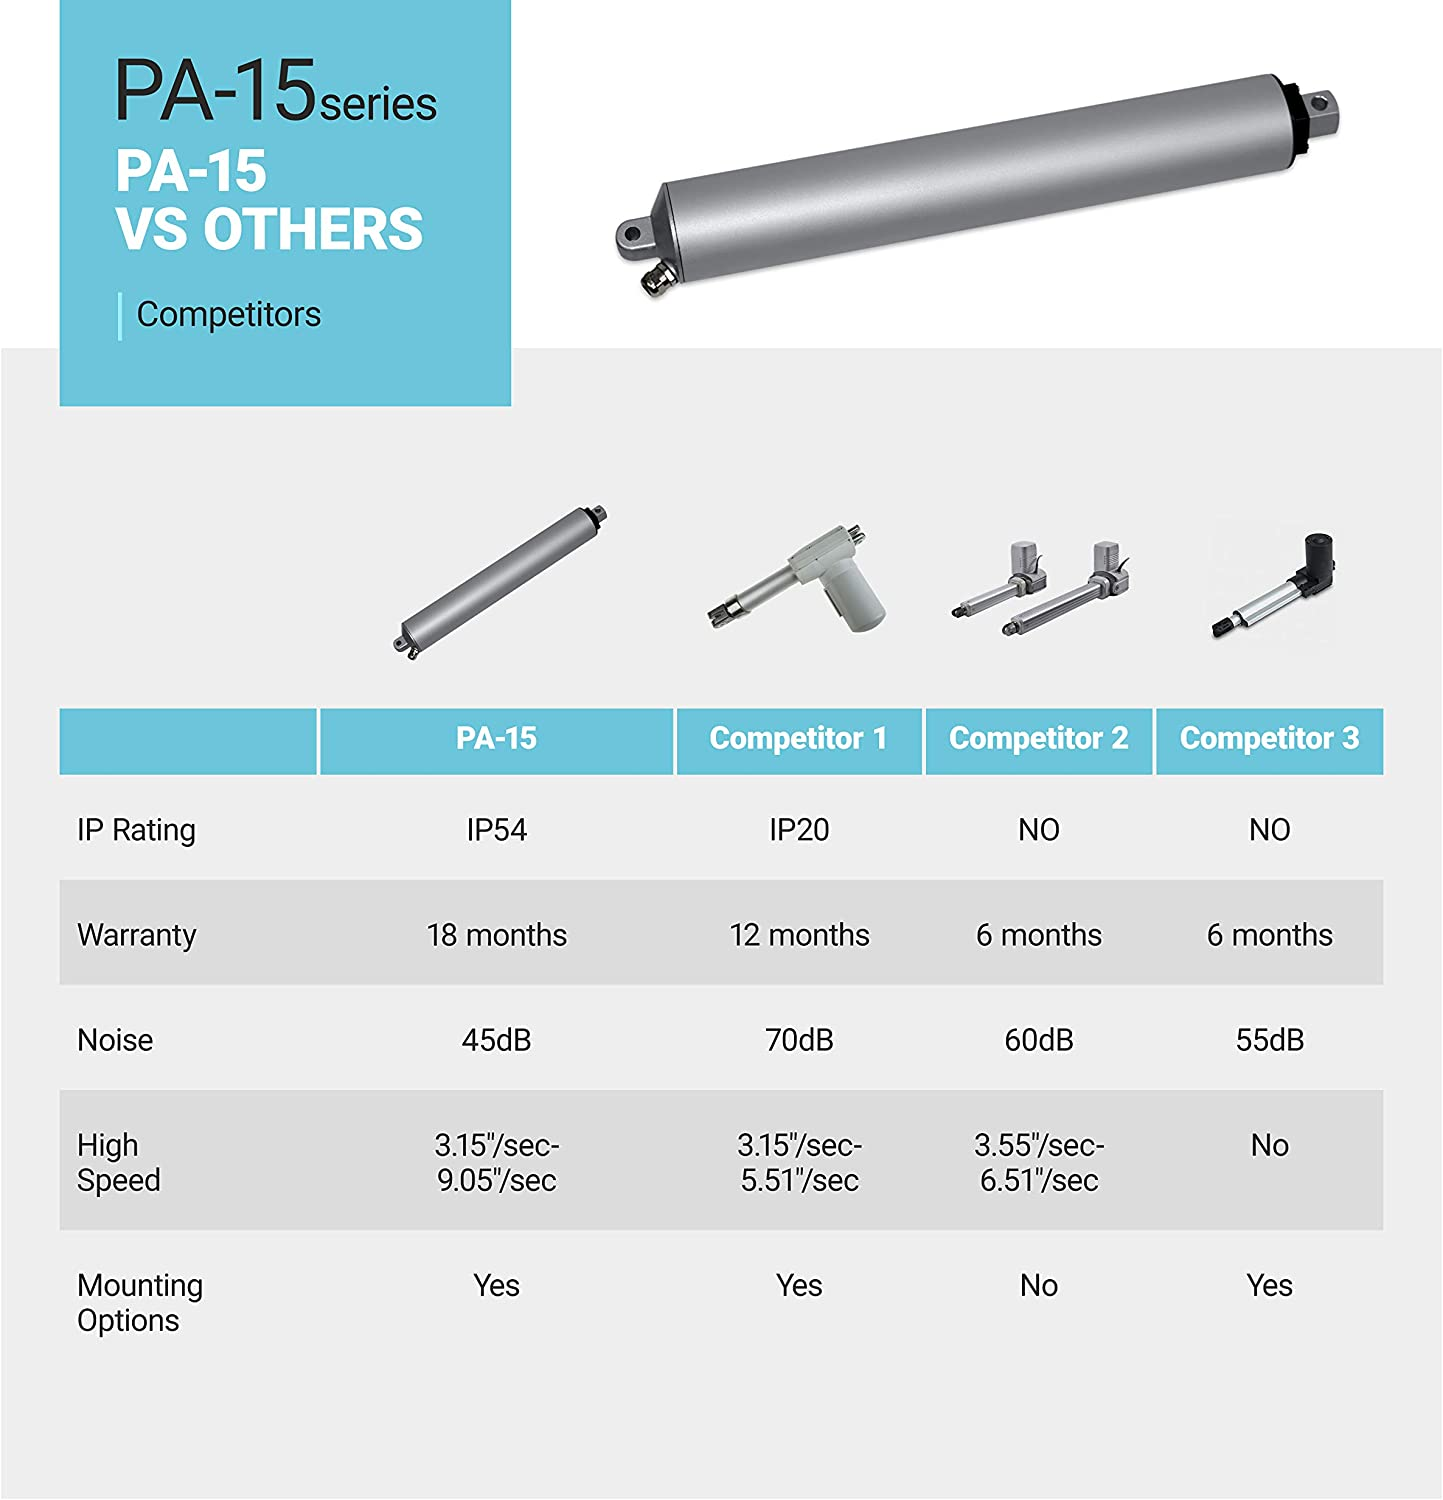 Model: PA-15-10-11 Linear Electric Actuator 12V Automations 10 in. // 11 lbs. Office Indoor and Outdoor Applications | High Speed Brushed DC Motor and Sturdy Stroke| for Home